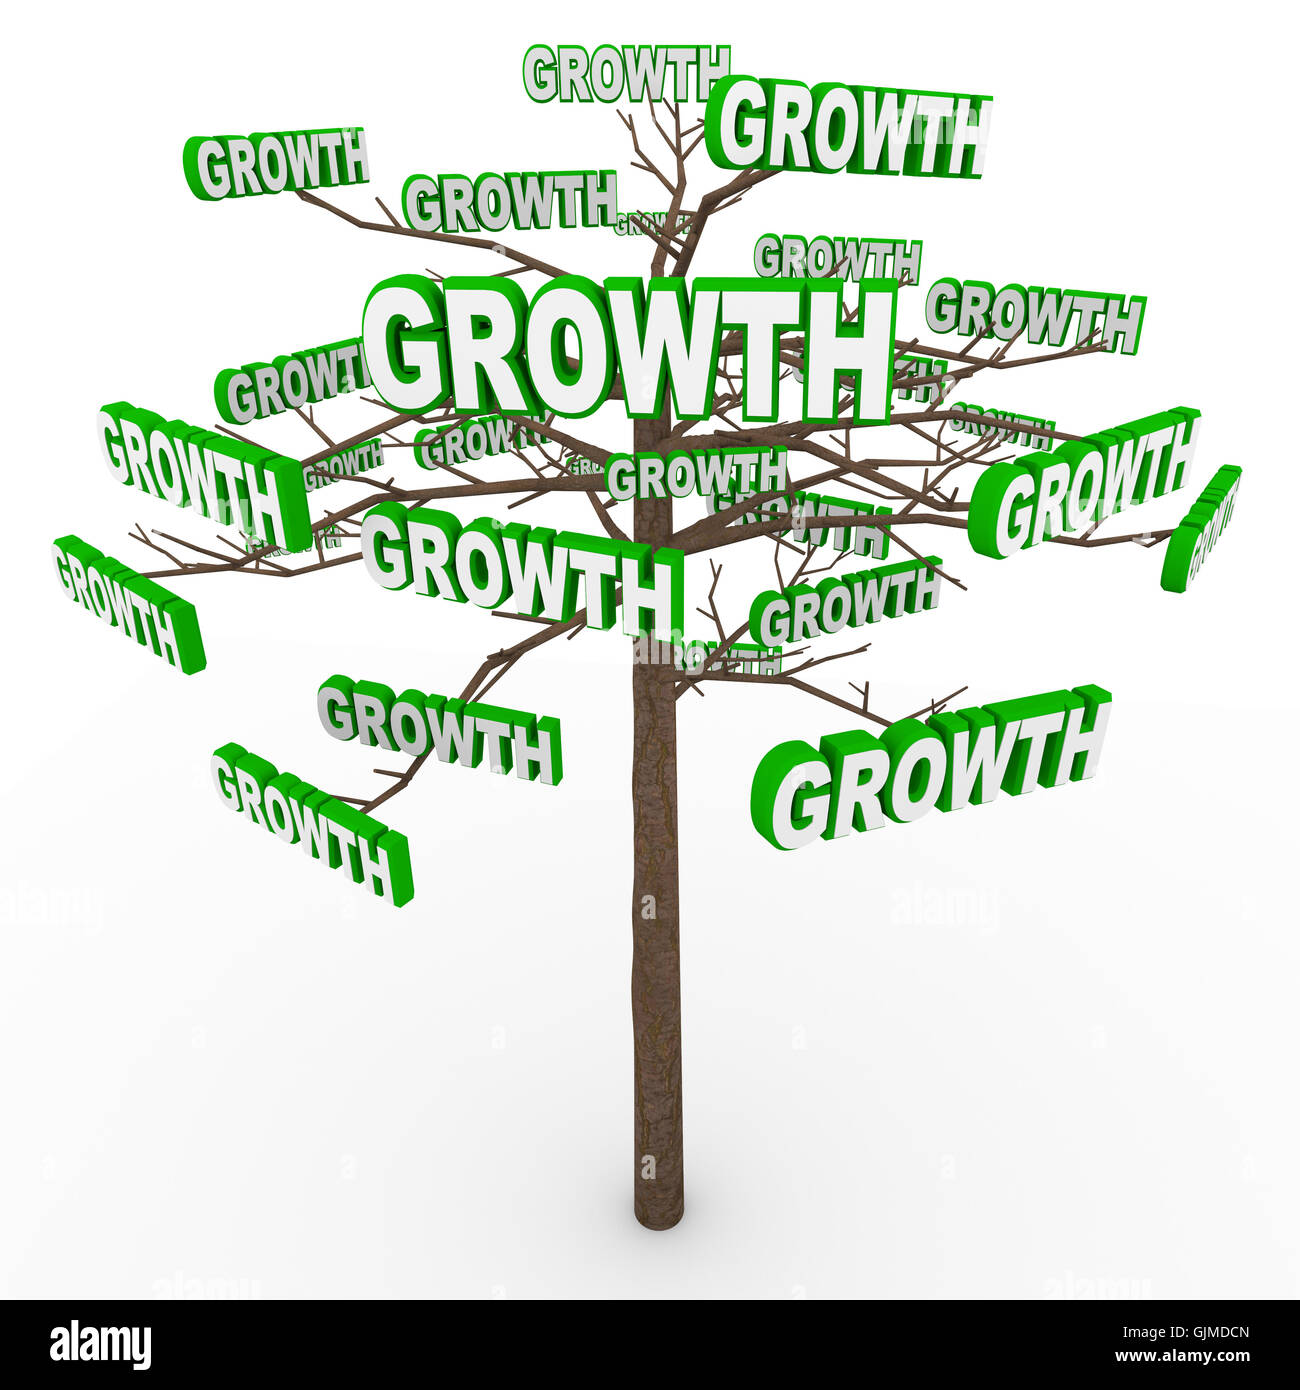 Growth Tree - Words on Branches Symbolize Organic Growing - Stock Image